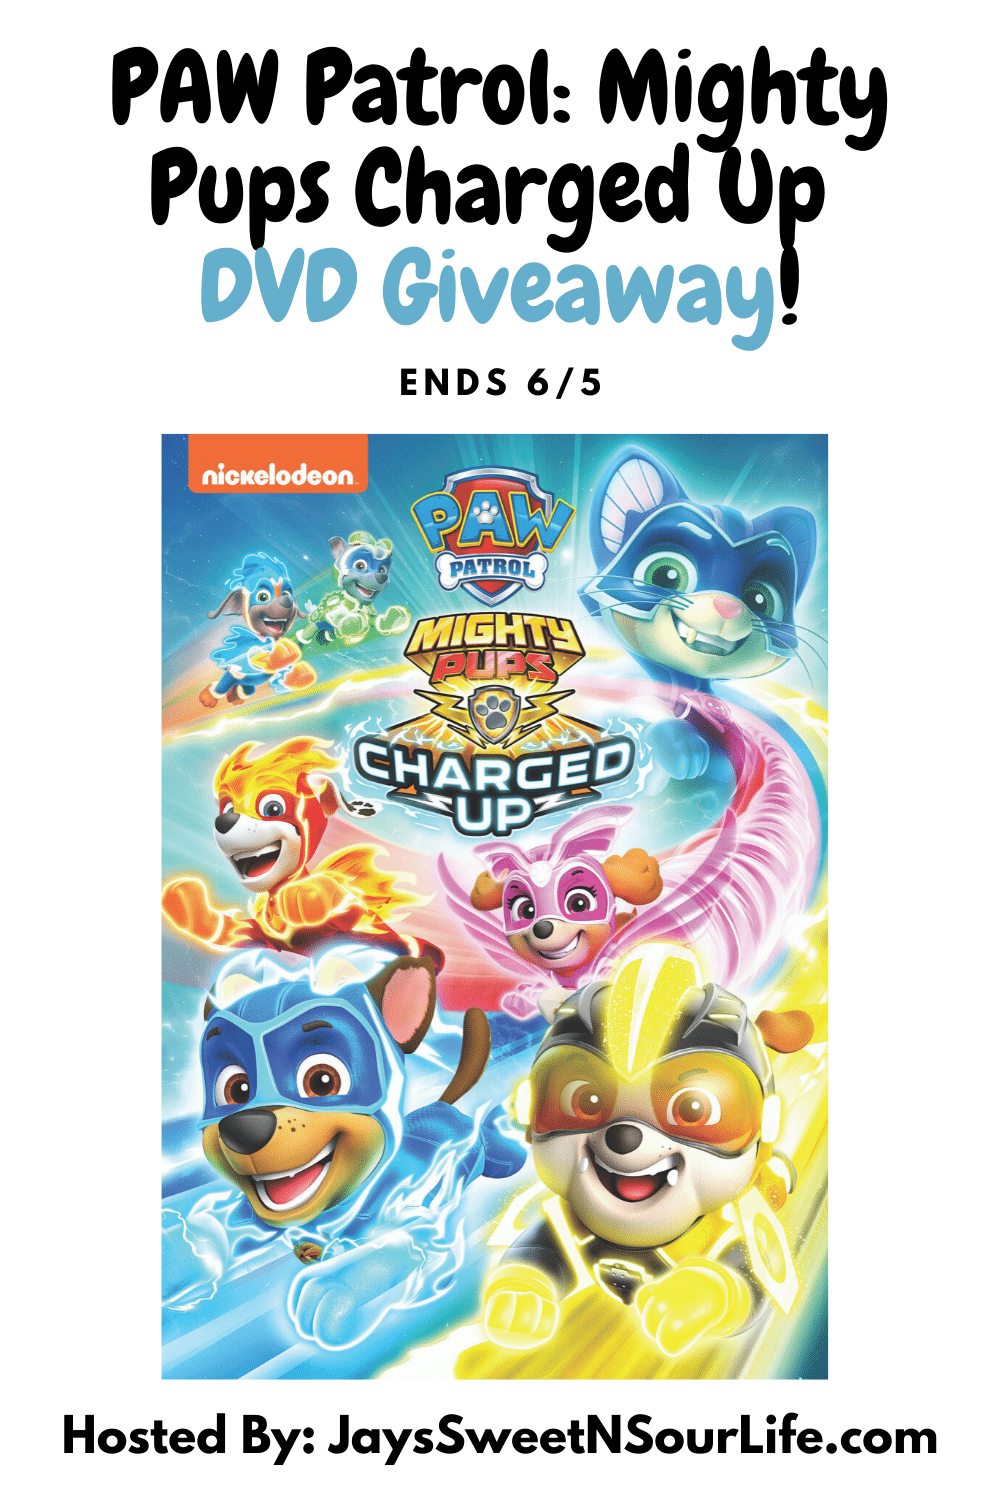 PAW Patrol Mighty Pups Charged Up DVD Giveaway. The paw-some Mighty Pups are back for next level action-packed adventures in PAW Patrol: Mighty Pups Charged Up. Enter to win a copy of this awesome DVD on my blog today, giveaway ends 6/5.